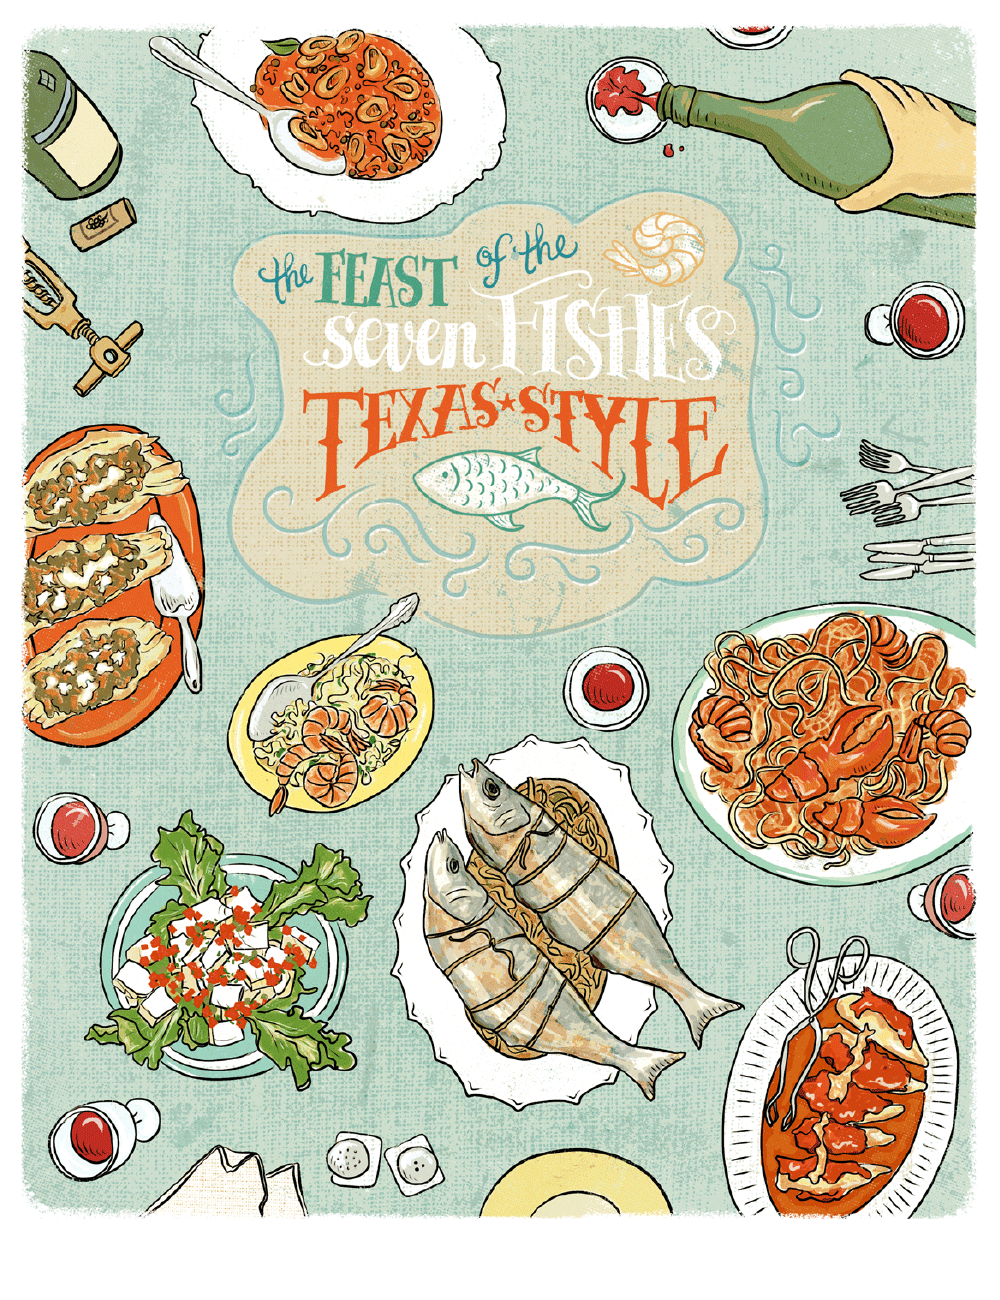 The Feast Of Seven Fishes Bambi Edlund Illustrationbambi